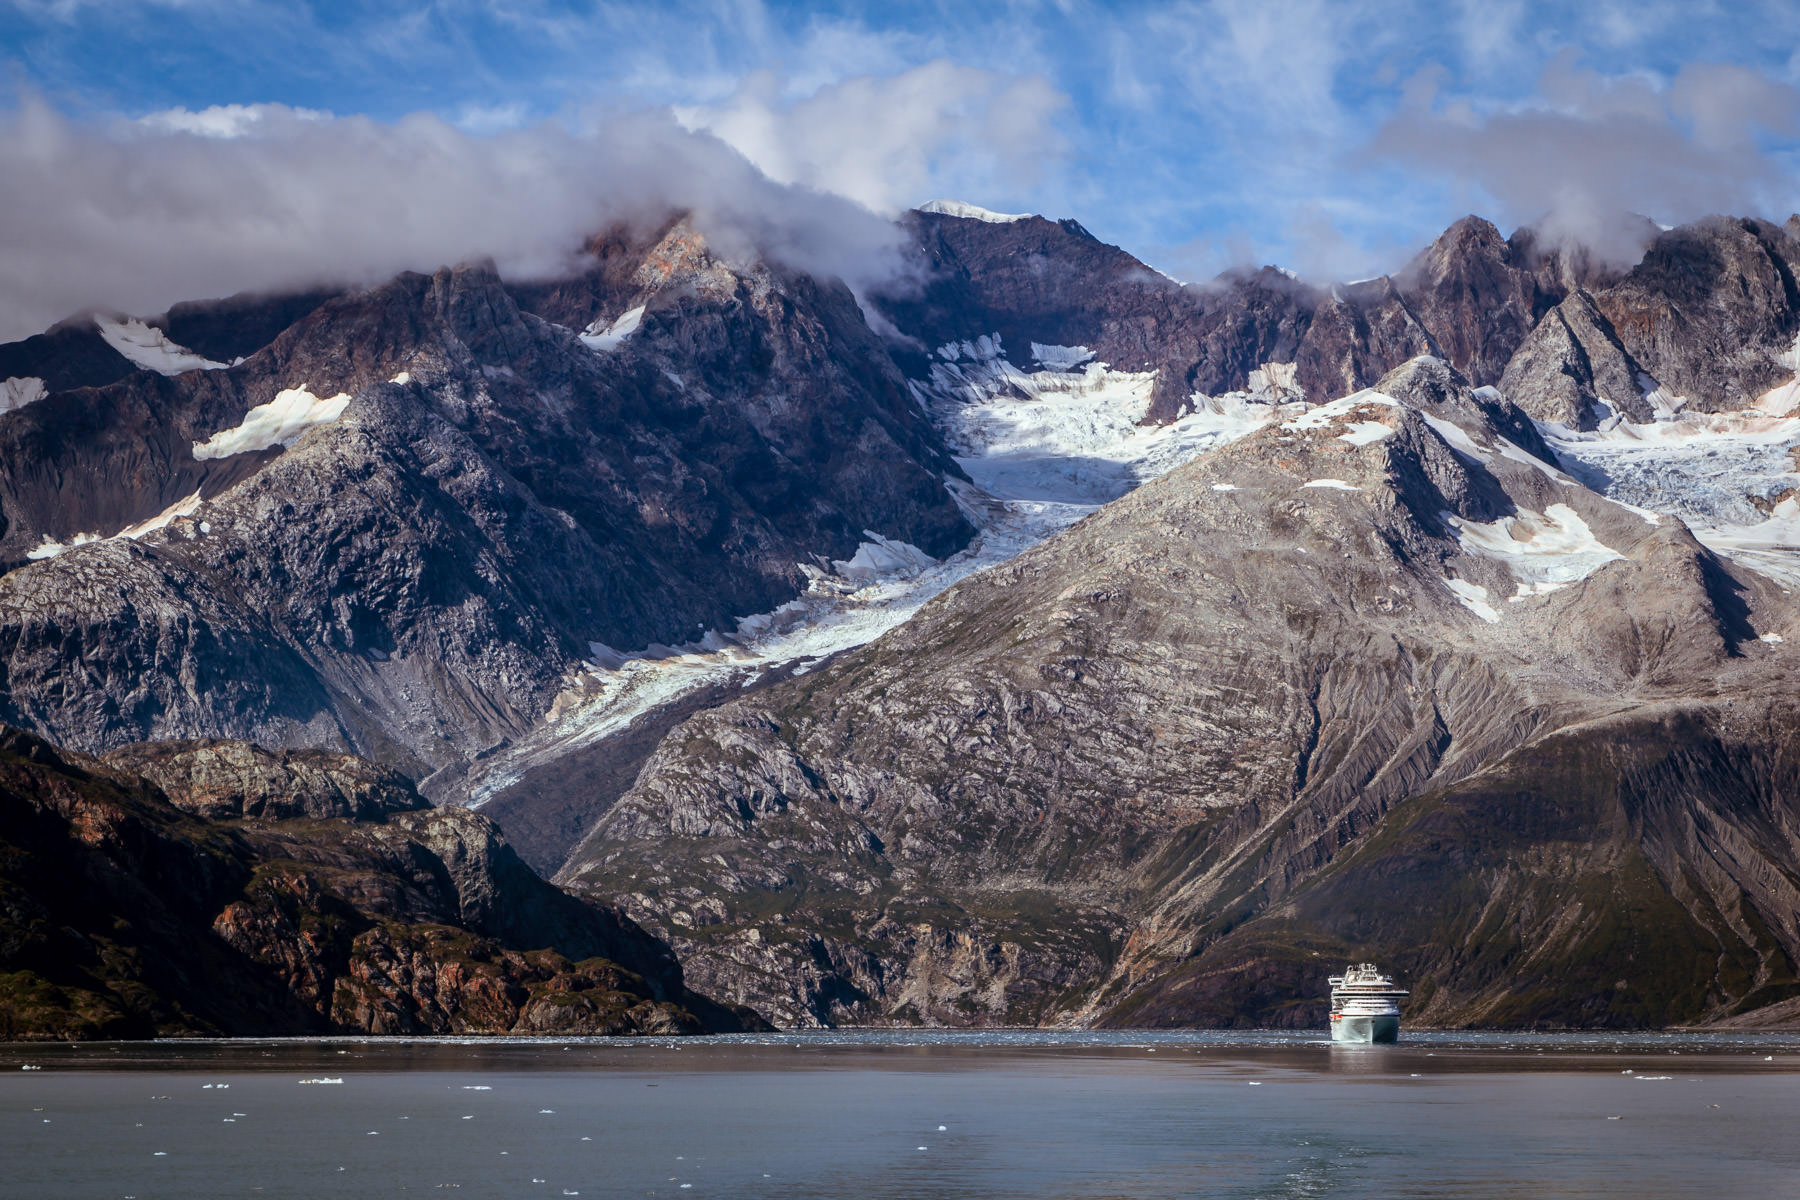 The cruise ship Sapphire Princess is dwarfed by the mountainous landscape of Alaska's Glacier Bay.